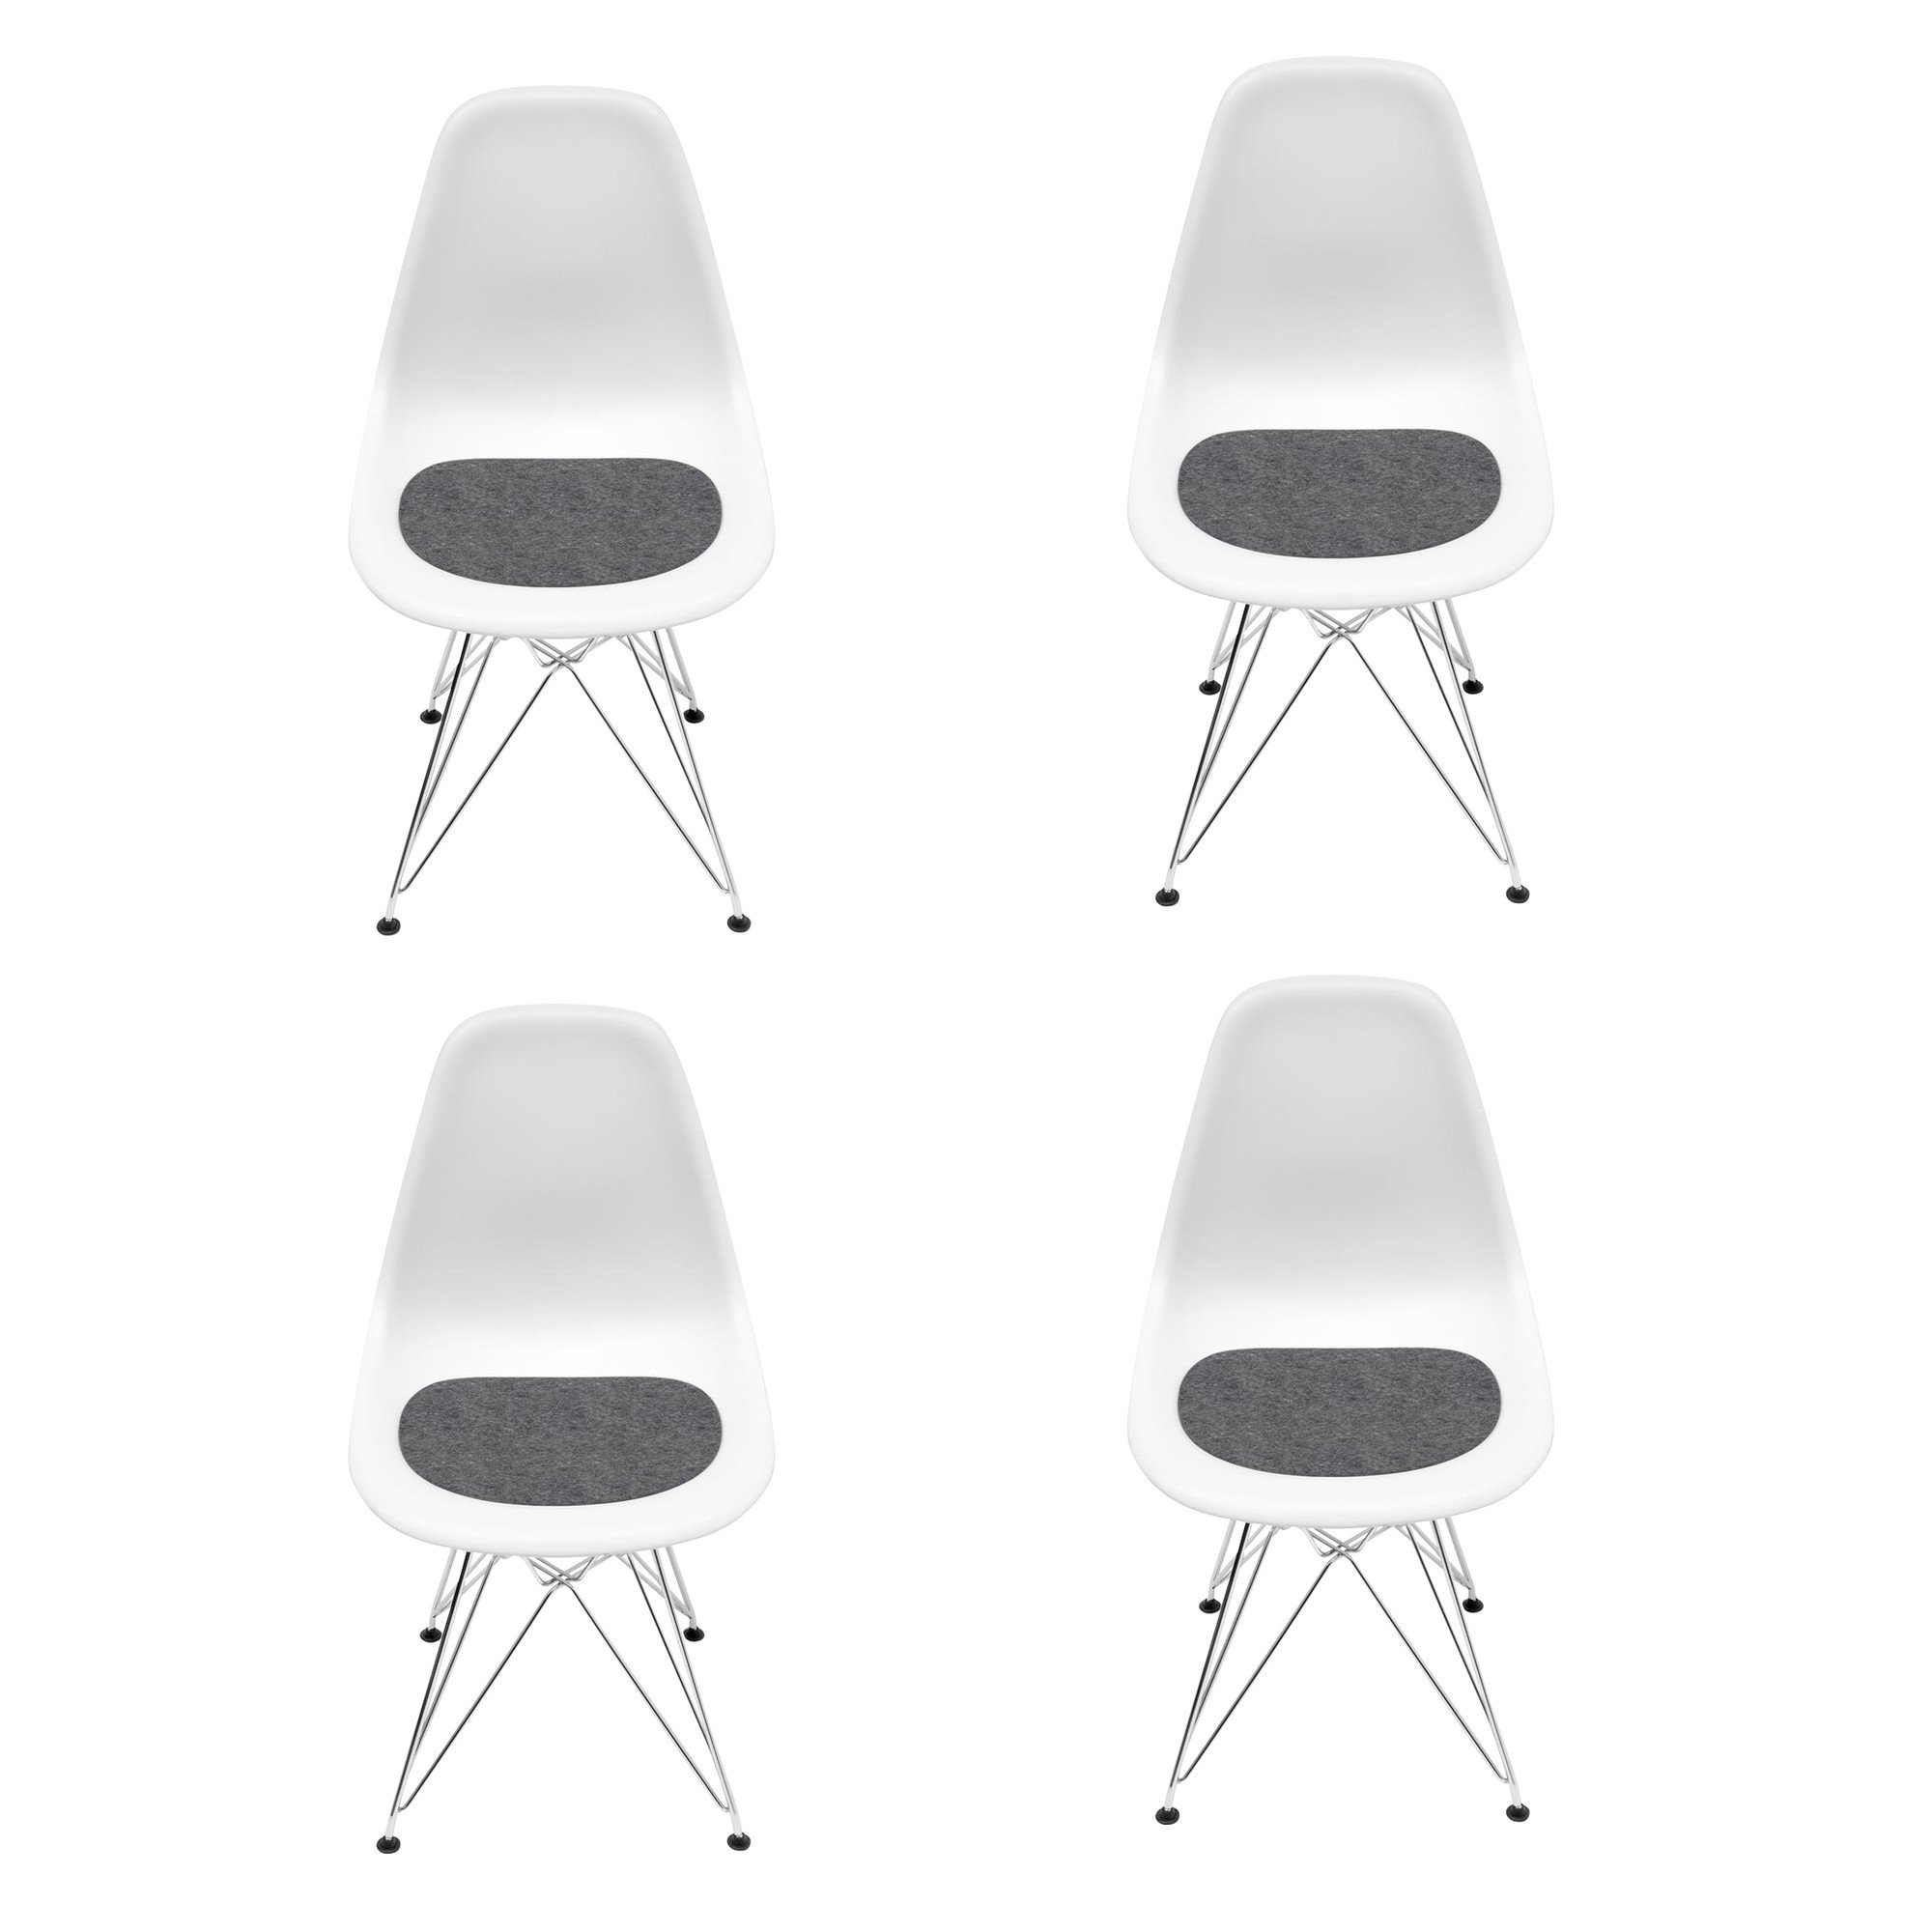 Vitra - Eames DSR Chair Promotion 4-Piece Set H43cm - white/new height  sc 1 st  AmbienteDirect & Vitra Eames DSR Chair Promotion 4-Piece Set H43cm | AmbienteDirect